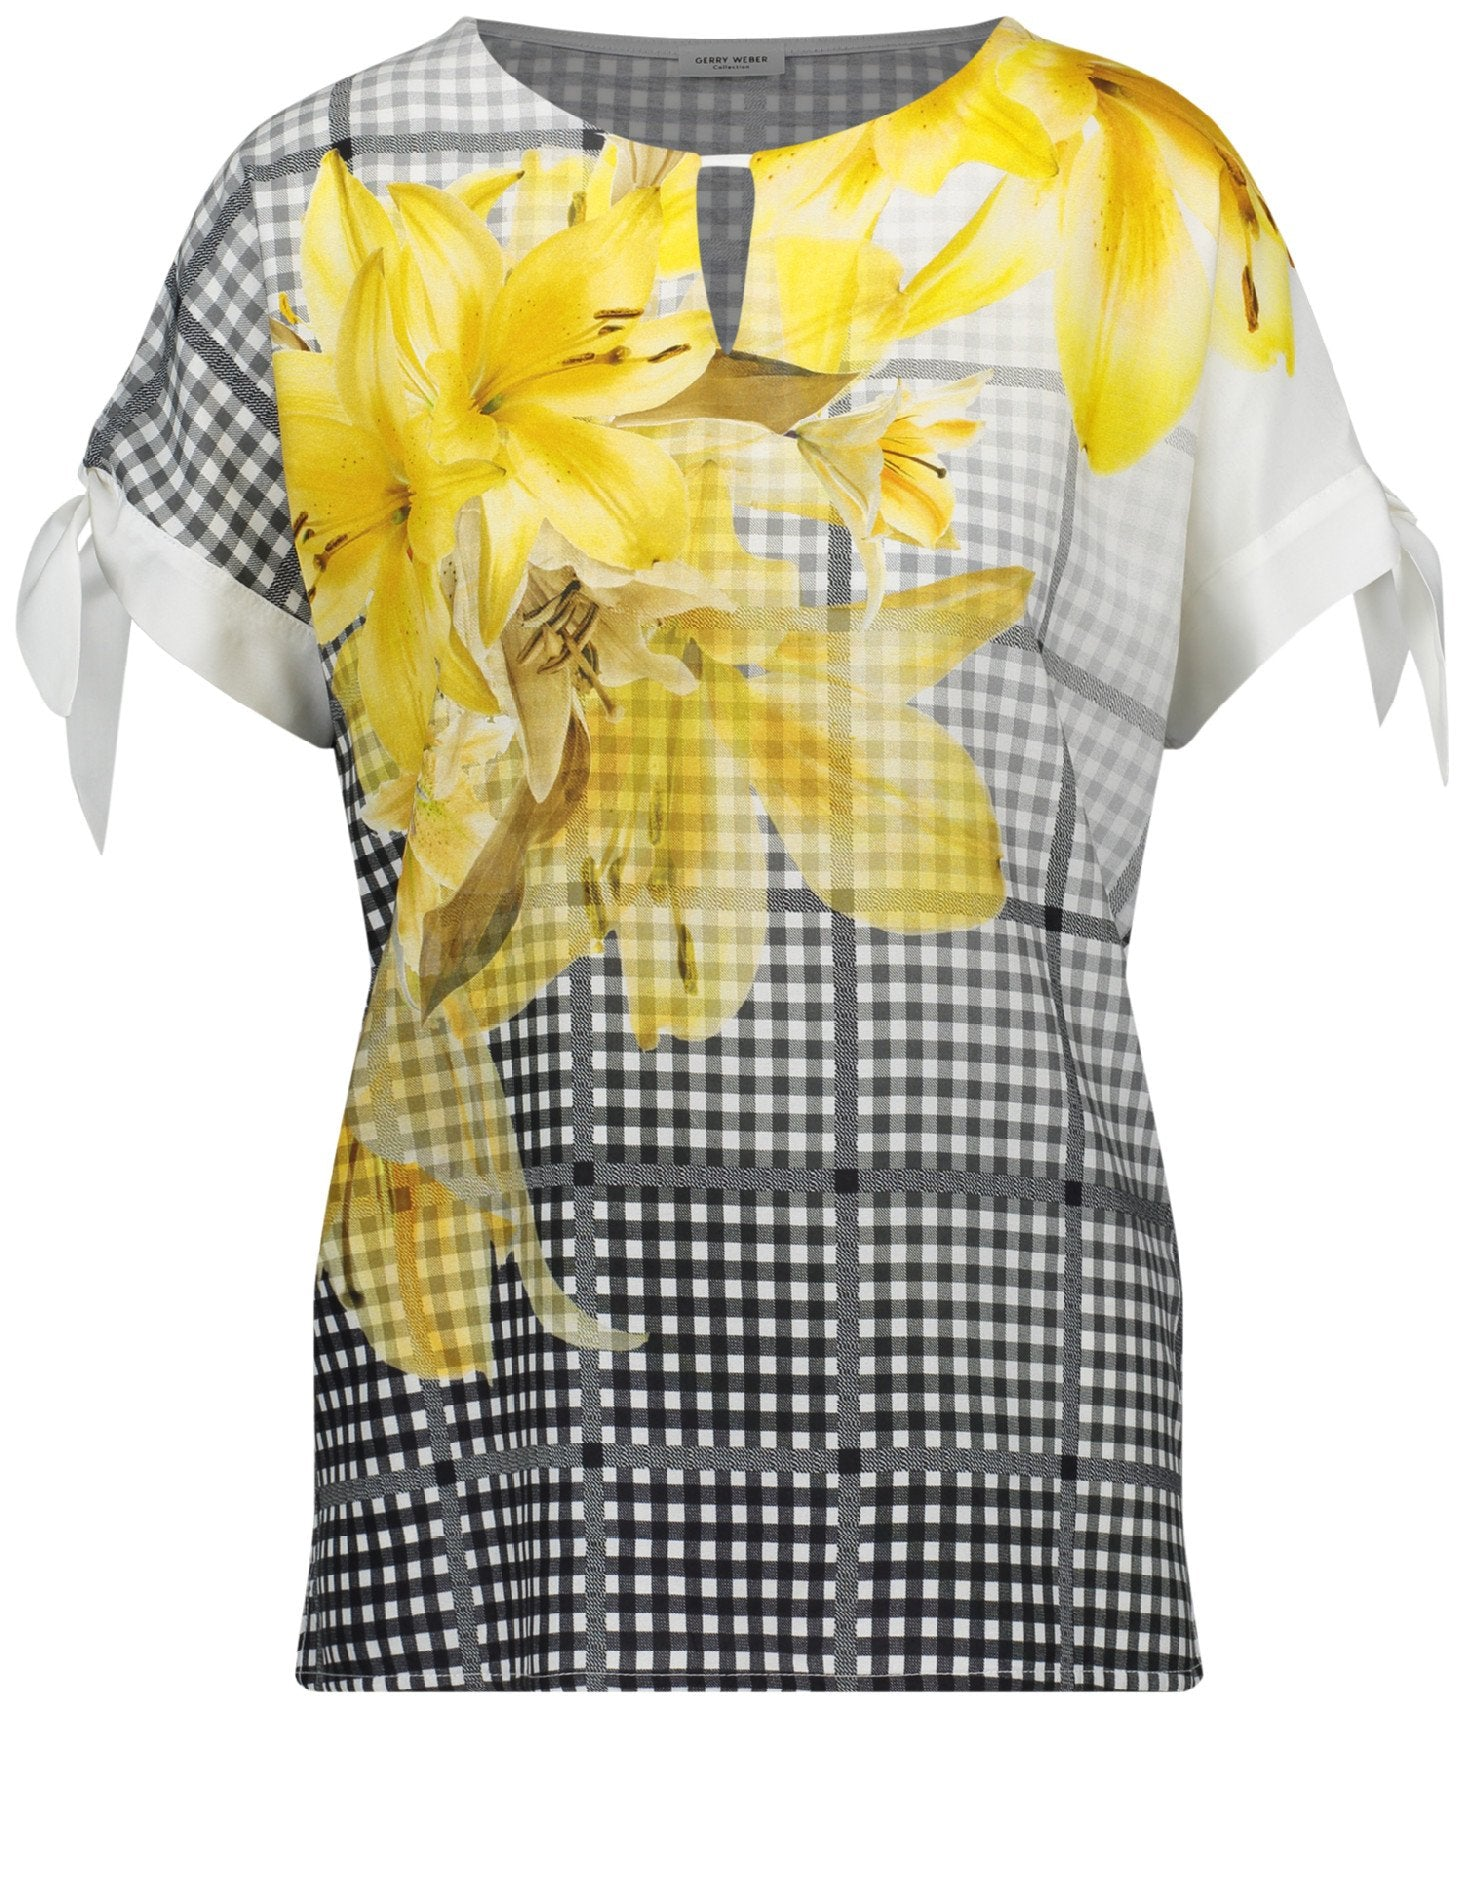 GERRY WEBER Woven/jersey mix check and flower print blouse